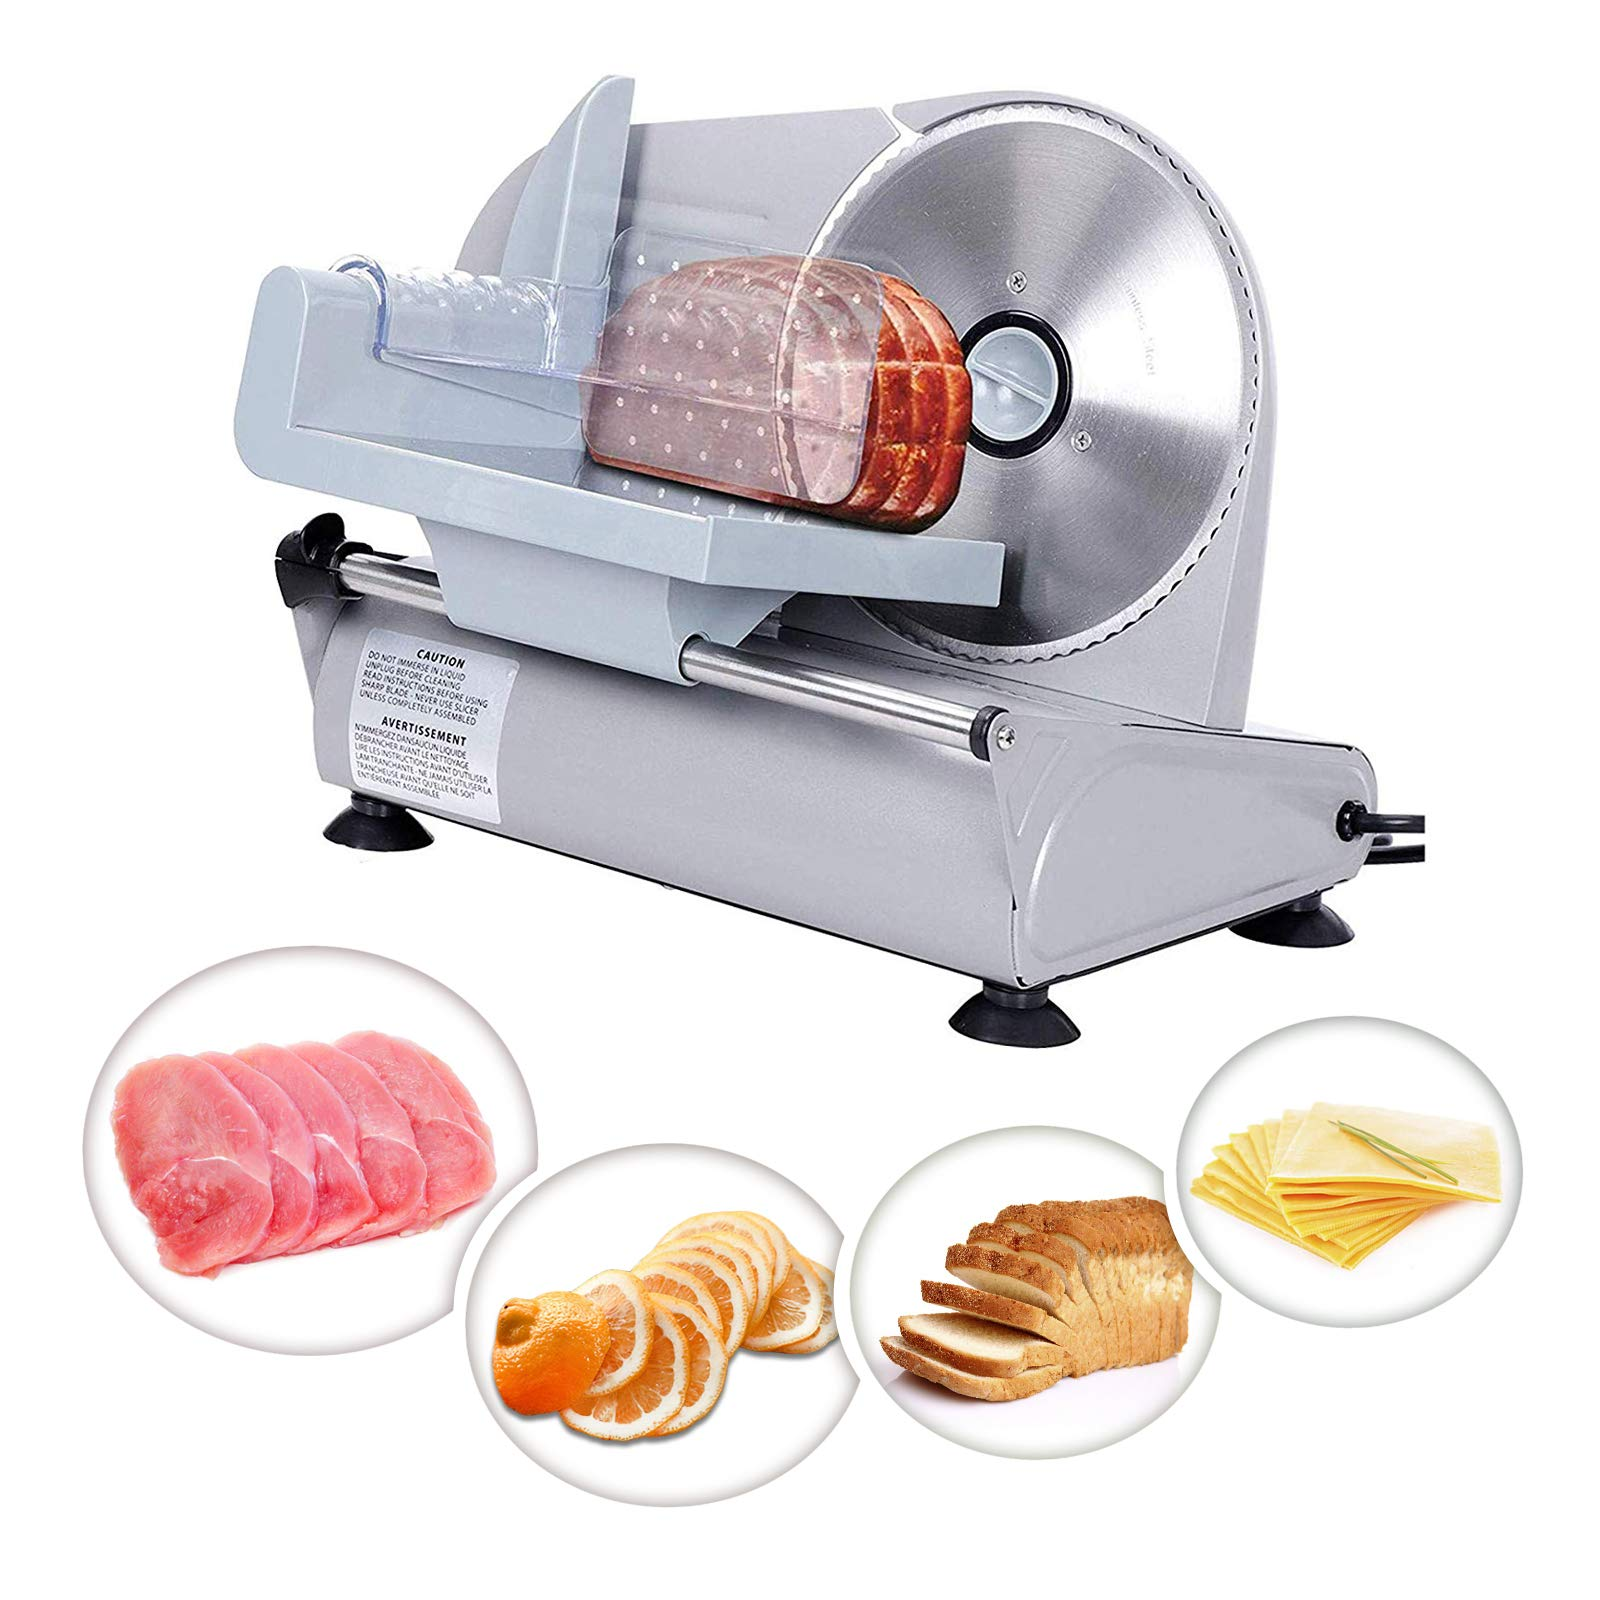 ZENY Professional Stainless Steel Electric Meat Slicer Food & Vegetable Cutter with Removable 7.5'' Blade - Adjustable Knob for Thickness - Anti Slip Rubber Feet - Sliver (7.5'')